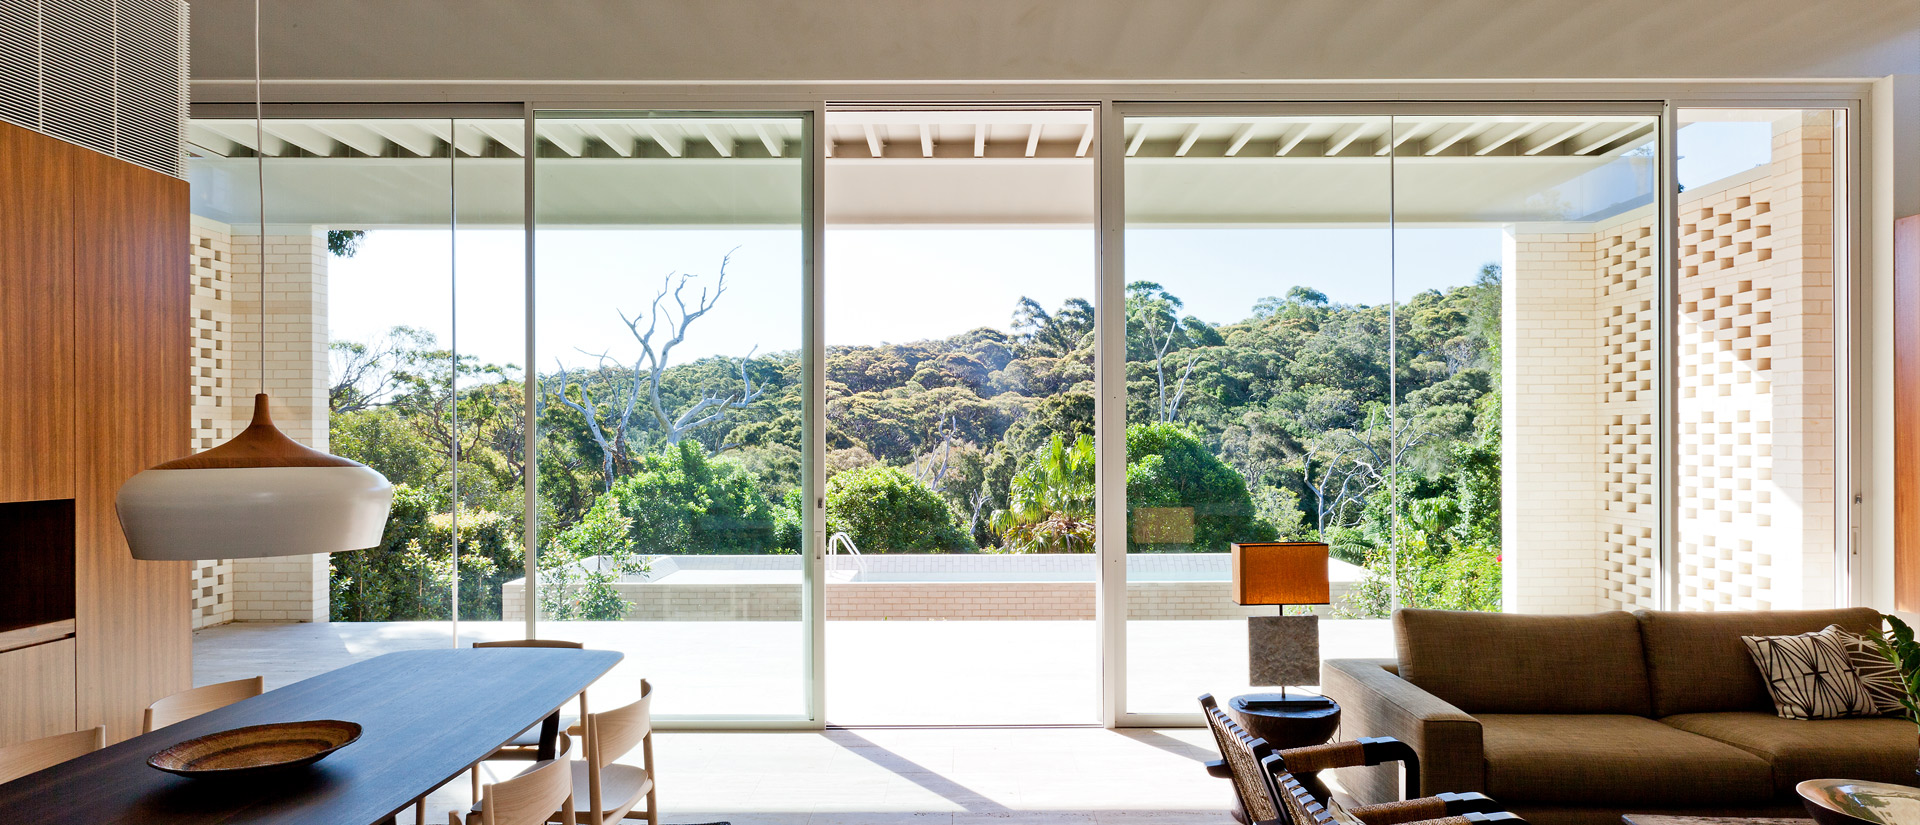 Sydney-Architect-Mosman3